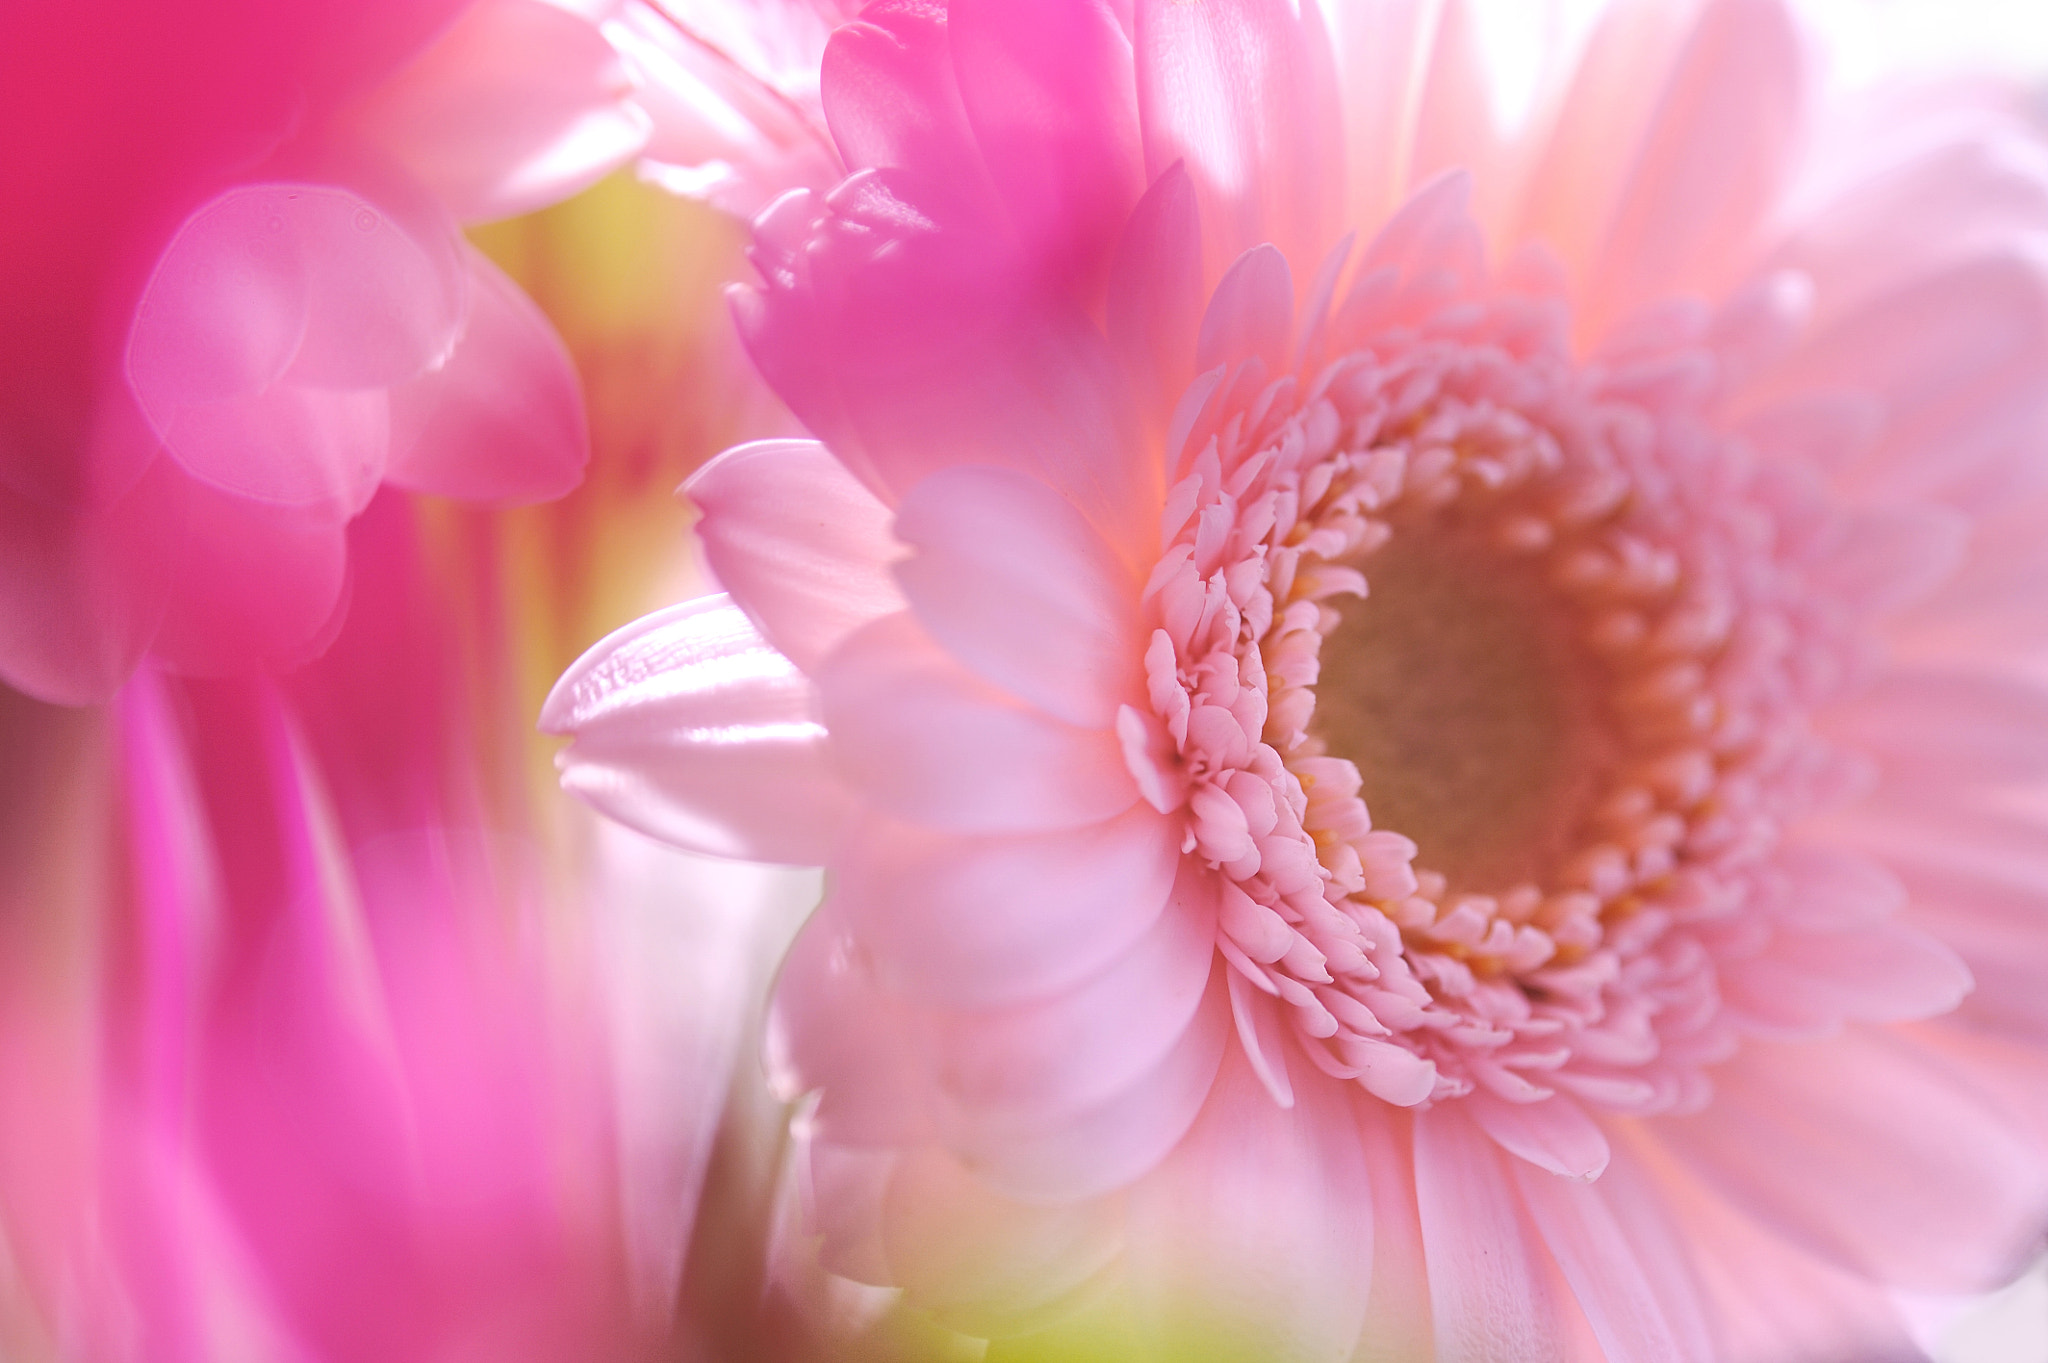 Photograph Floral hour by Lafugue Logos   on 500px